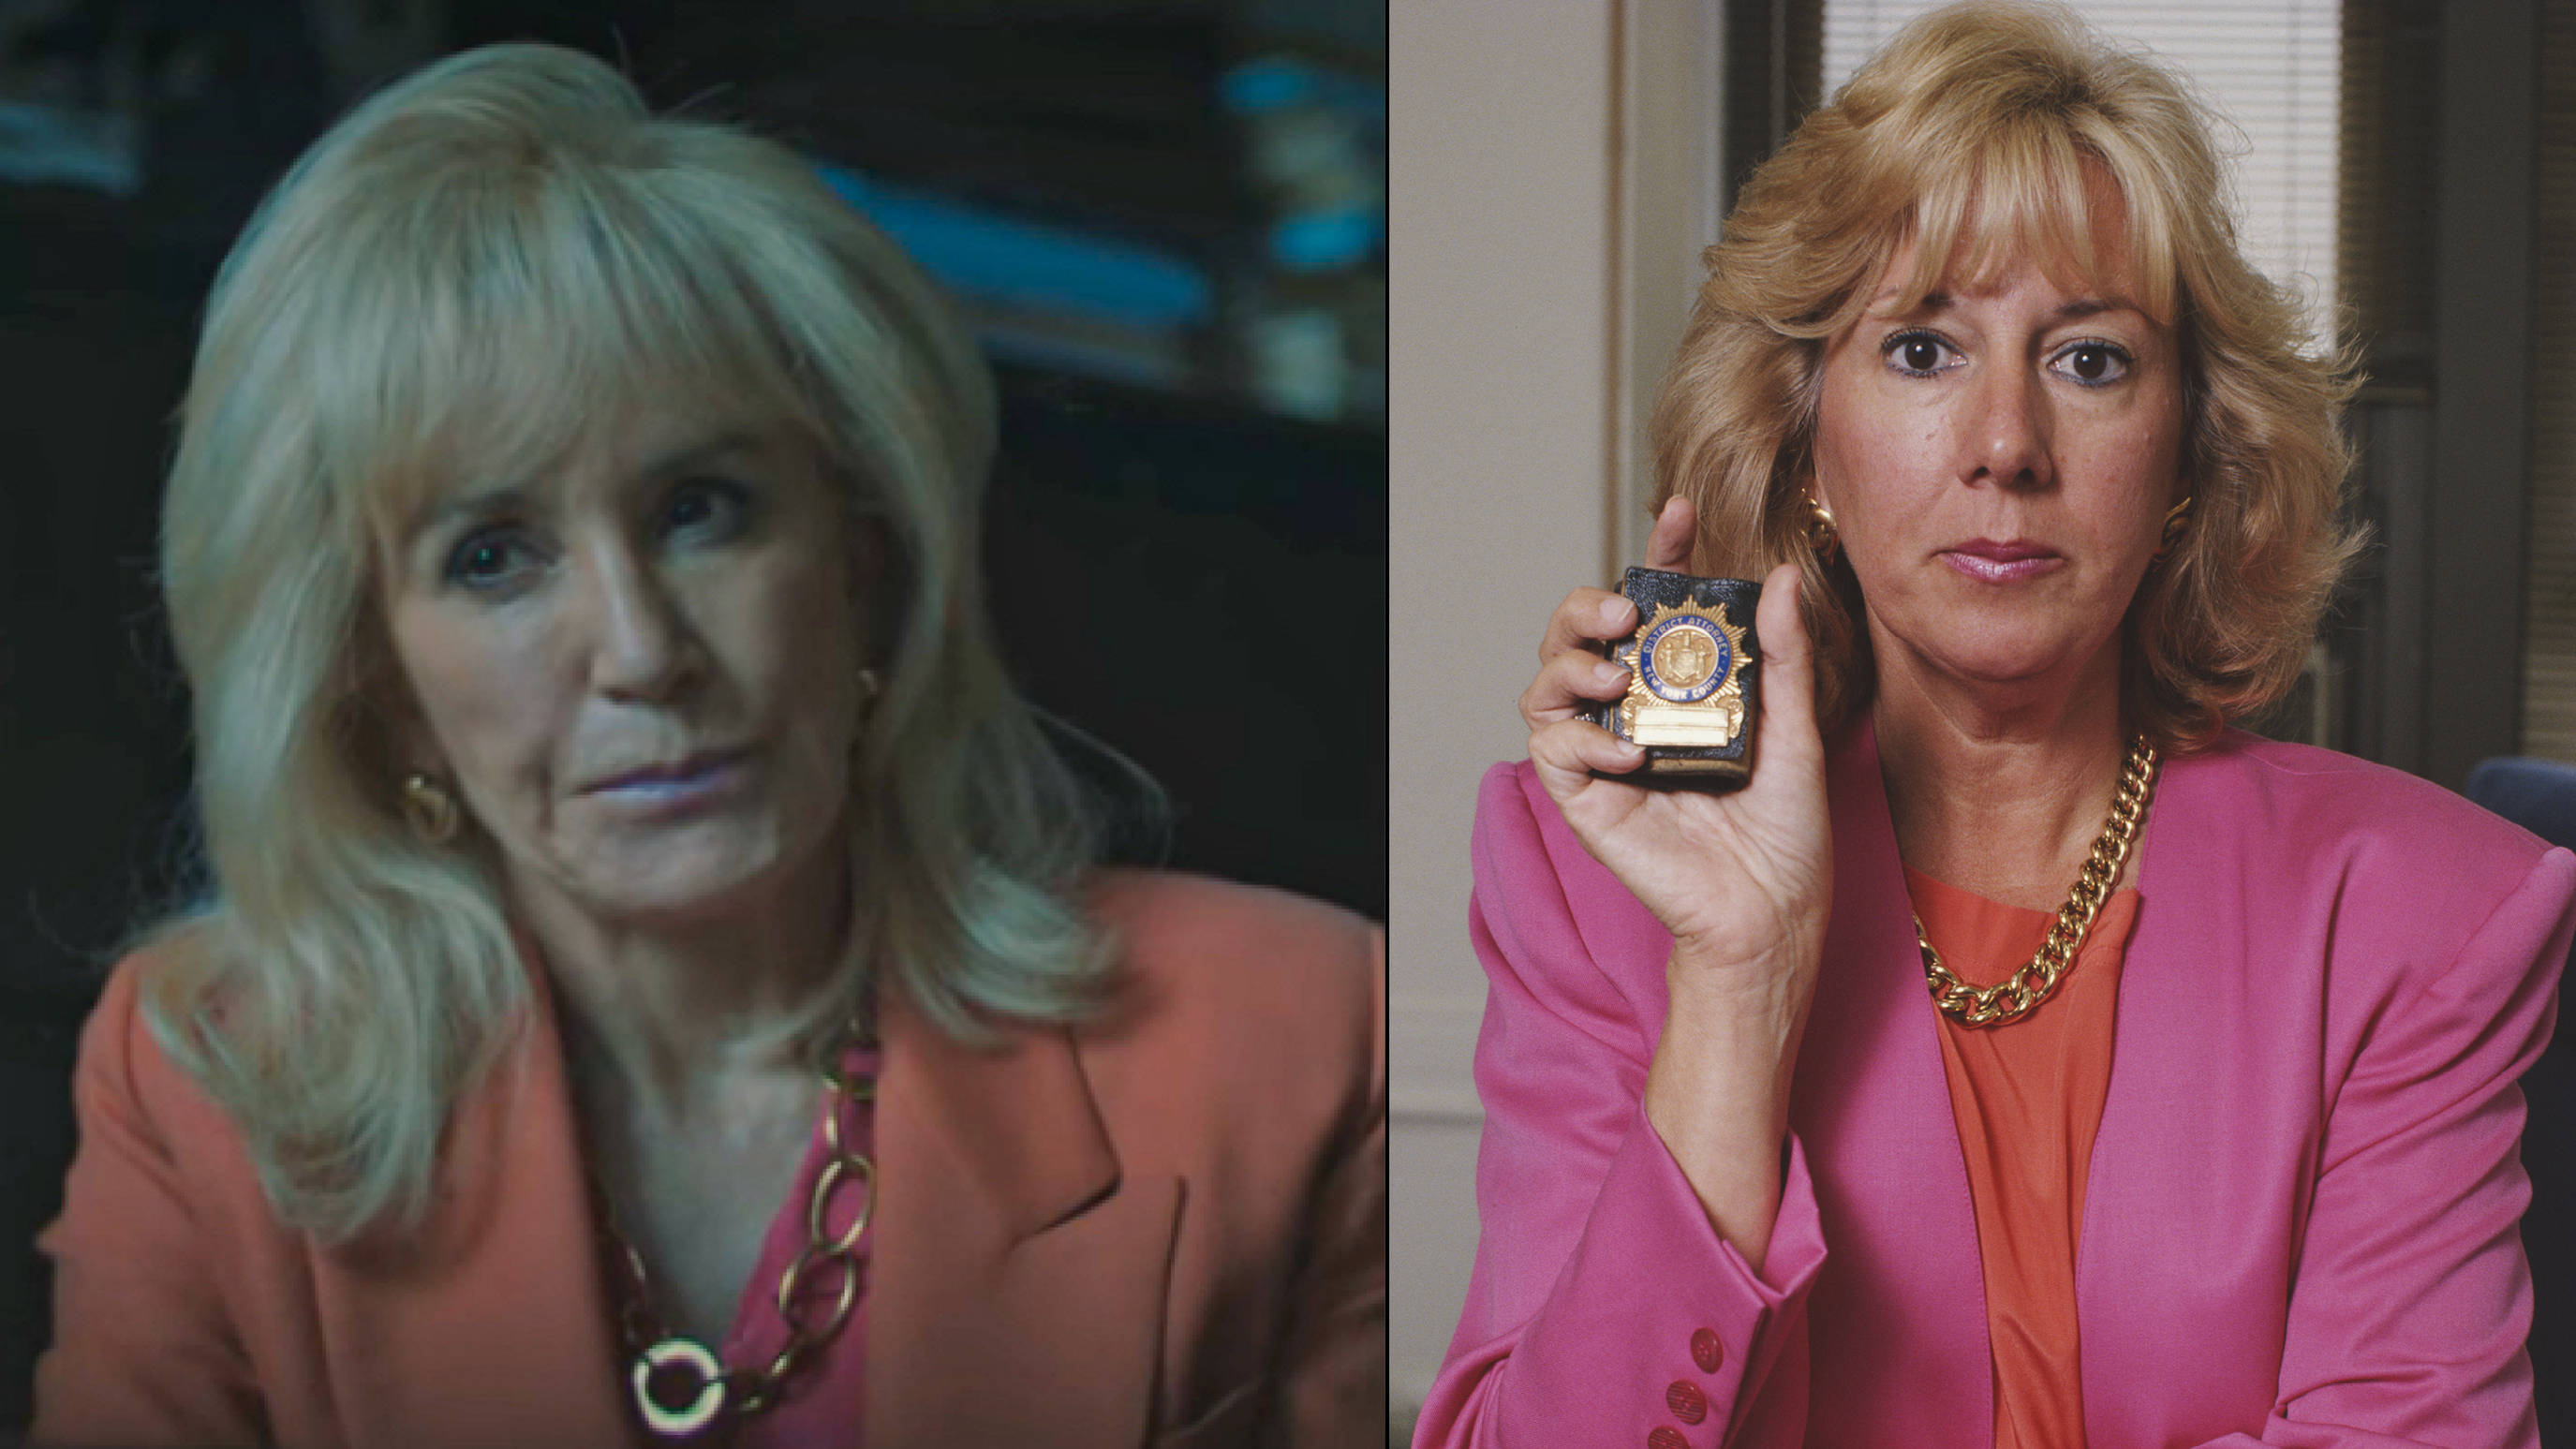 When They See Us' prosecutor Linda Fairstein responds to